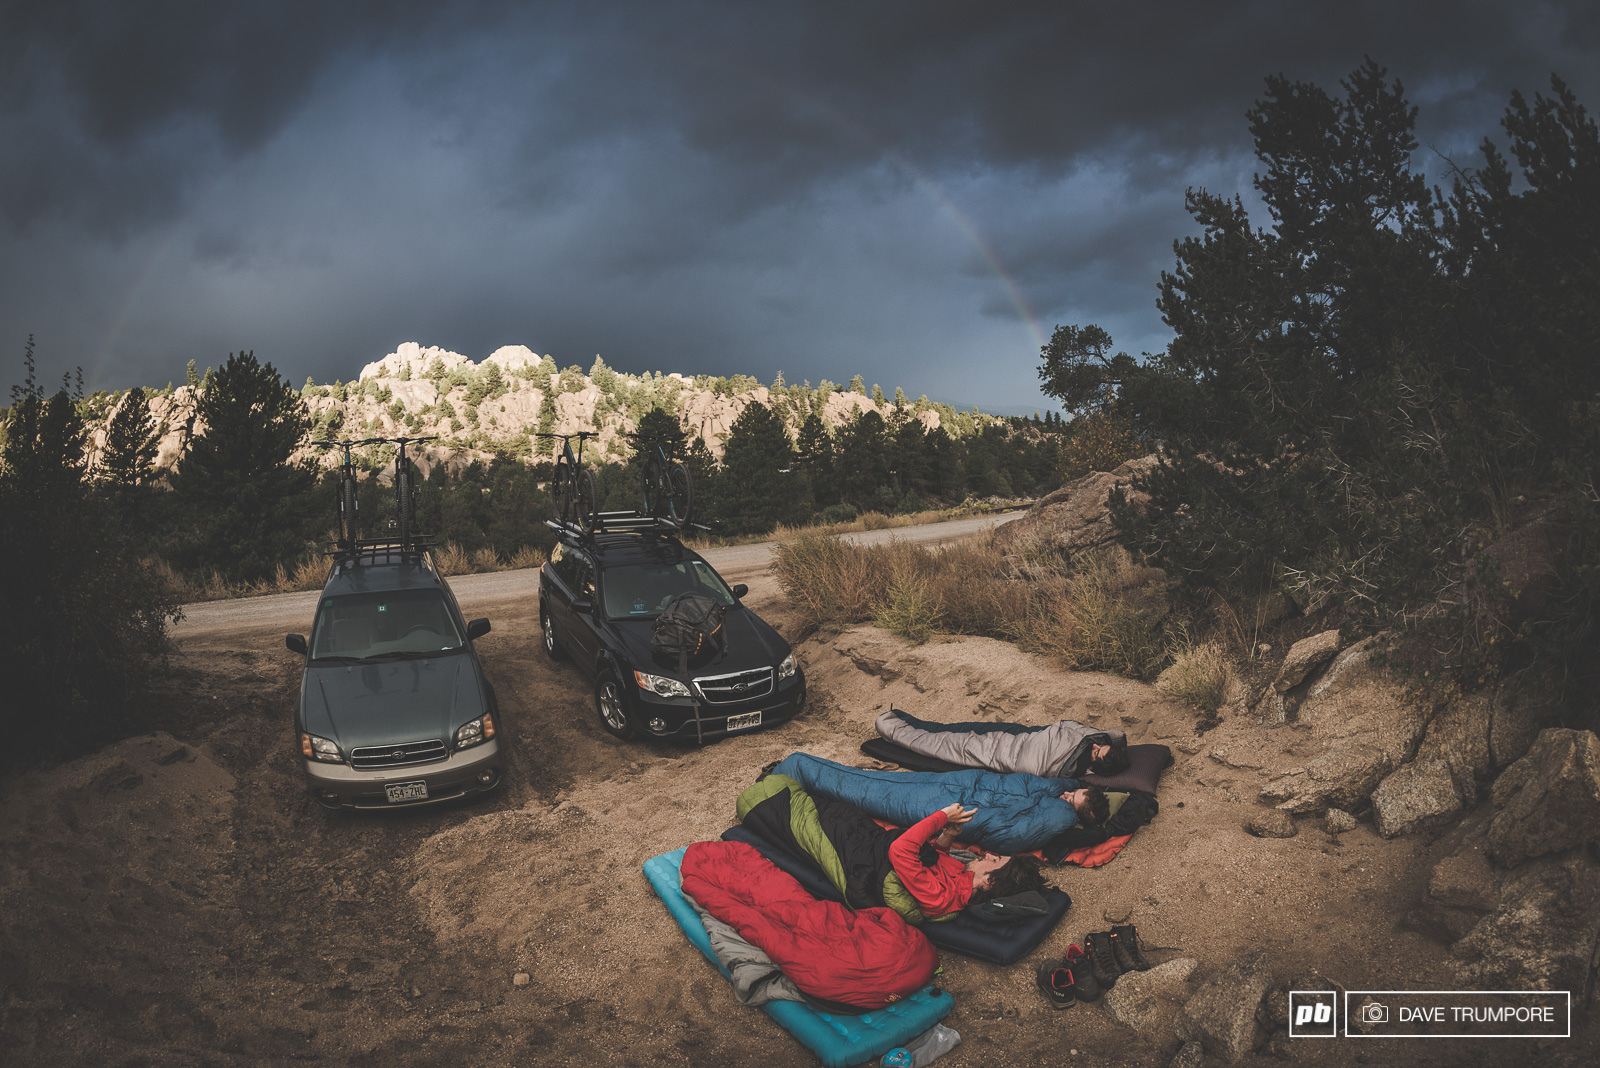 While rainbow was a visual to awake to it became very apparent that the sky was quickly turning black and heading our way. So half asleep we packed up and pinned it in the opposite direction.